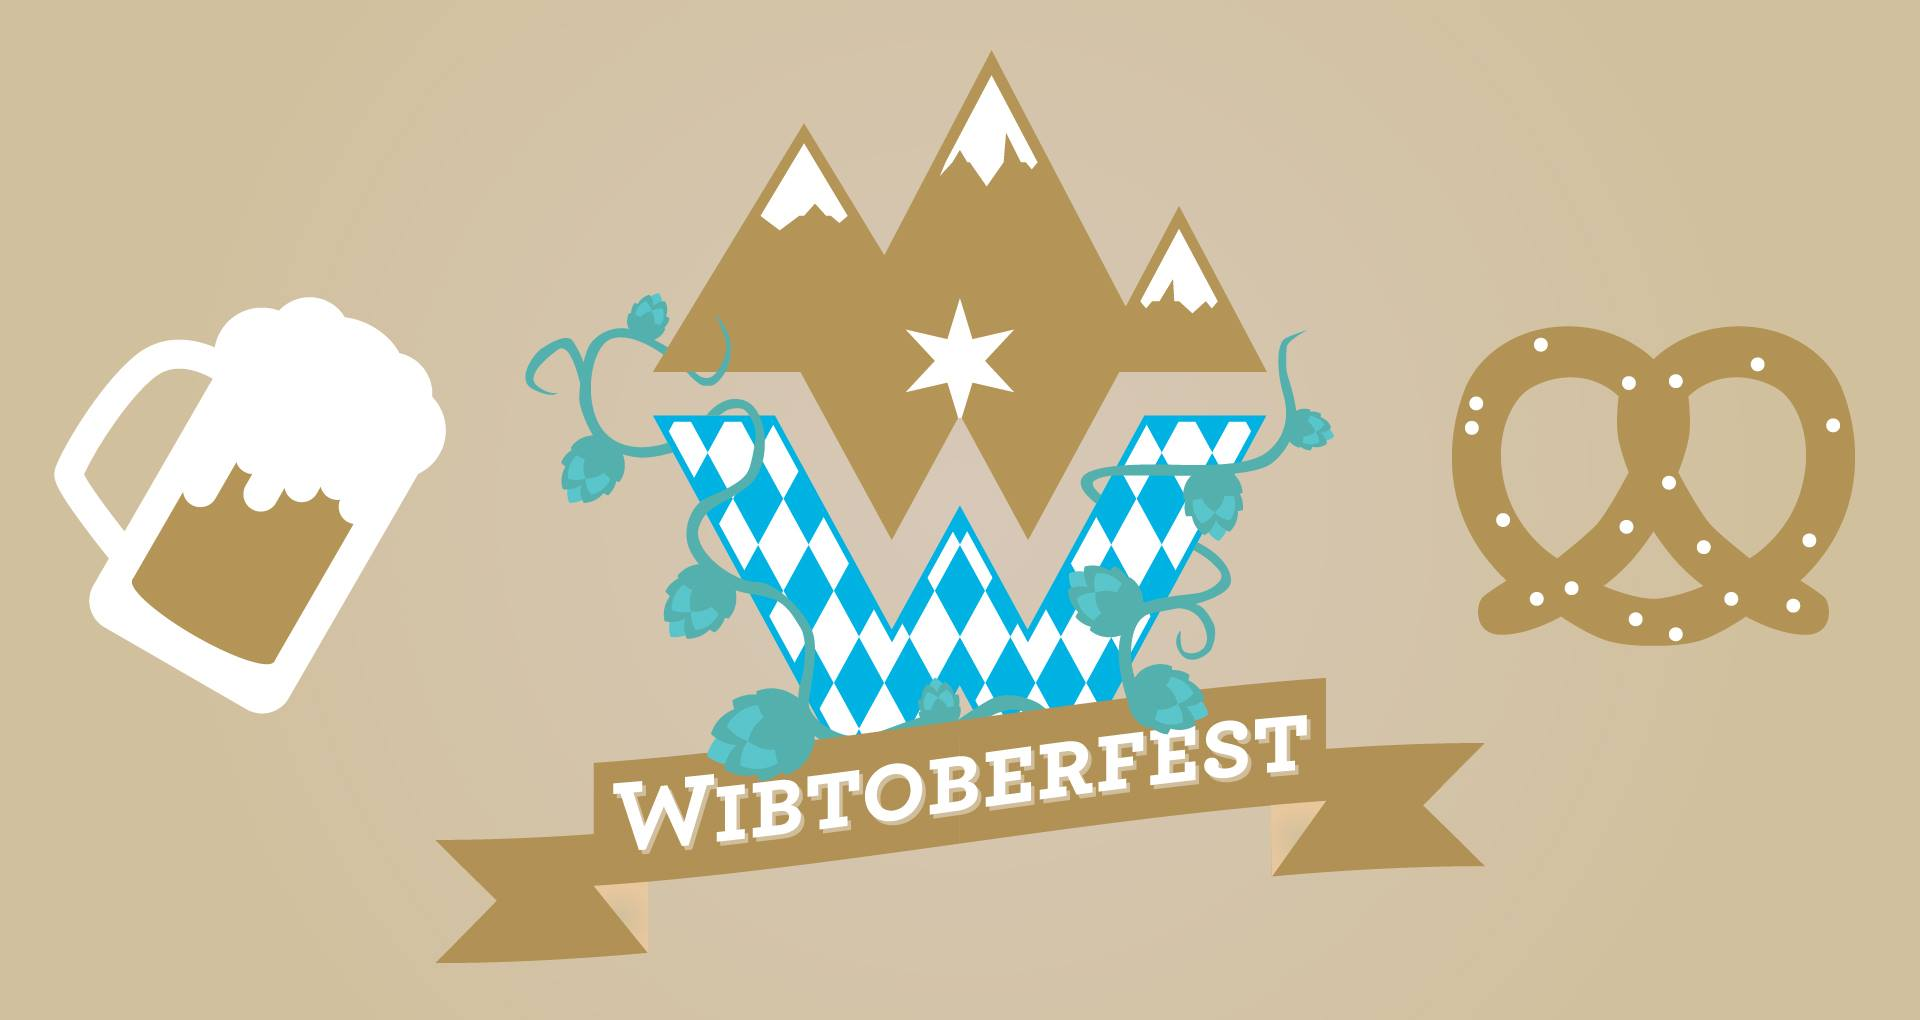 WIBTOBERFEST: 3rd Anniversary Celebration this Saturday!